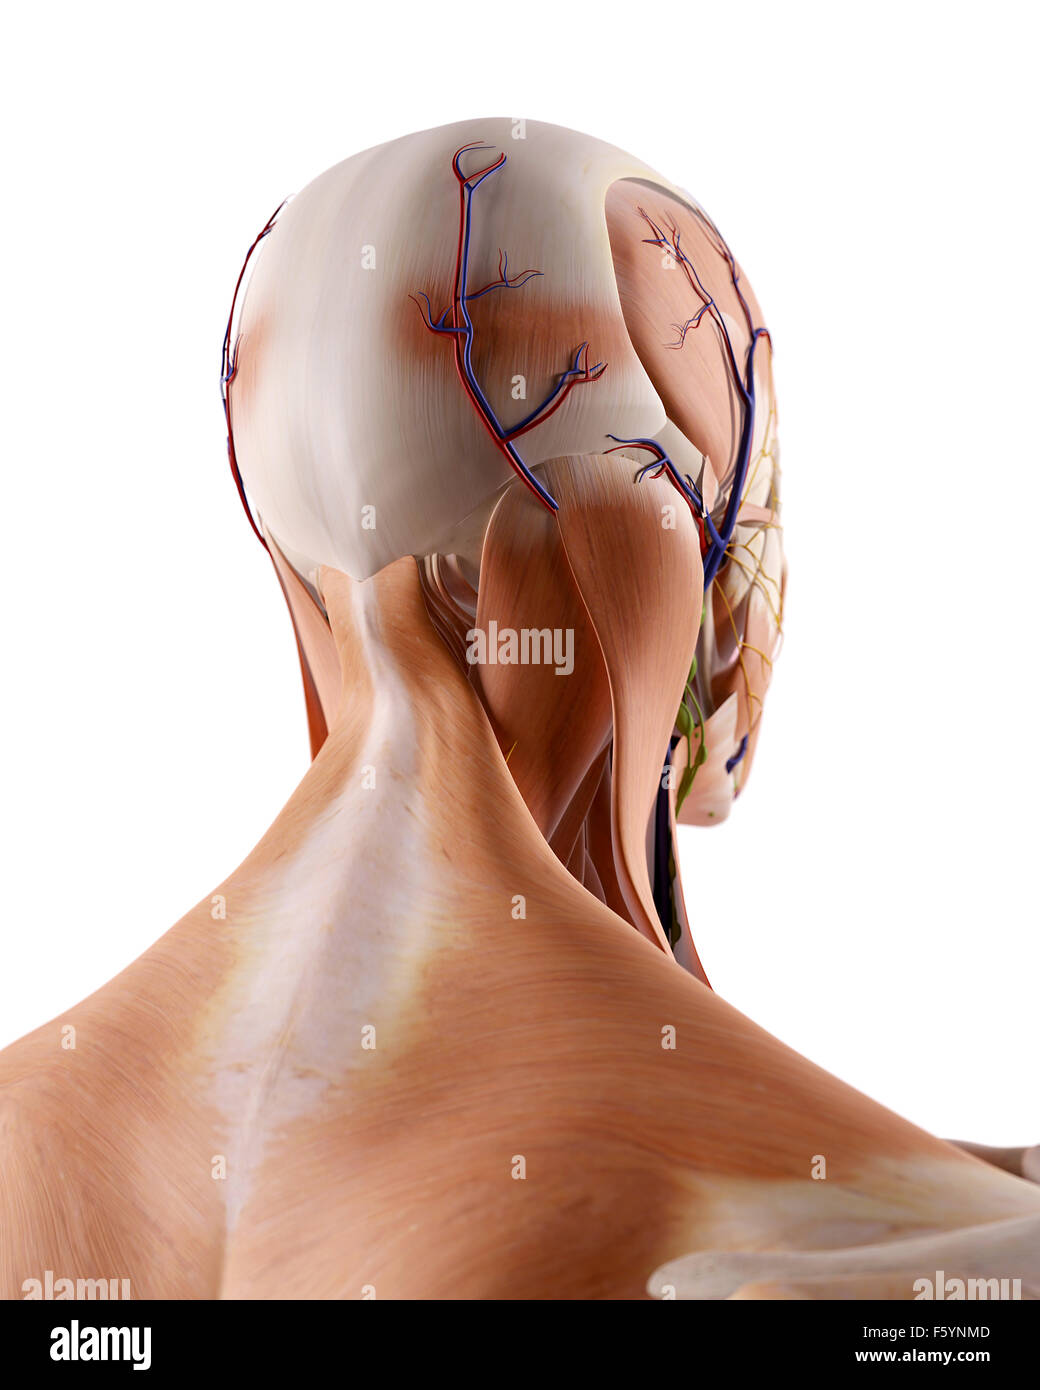 Neck Anatomy Stock Photos & Neck Anatomy Stock Images - Alamy